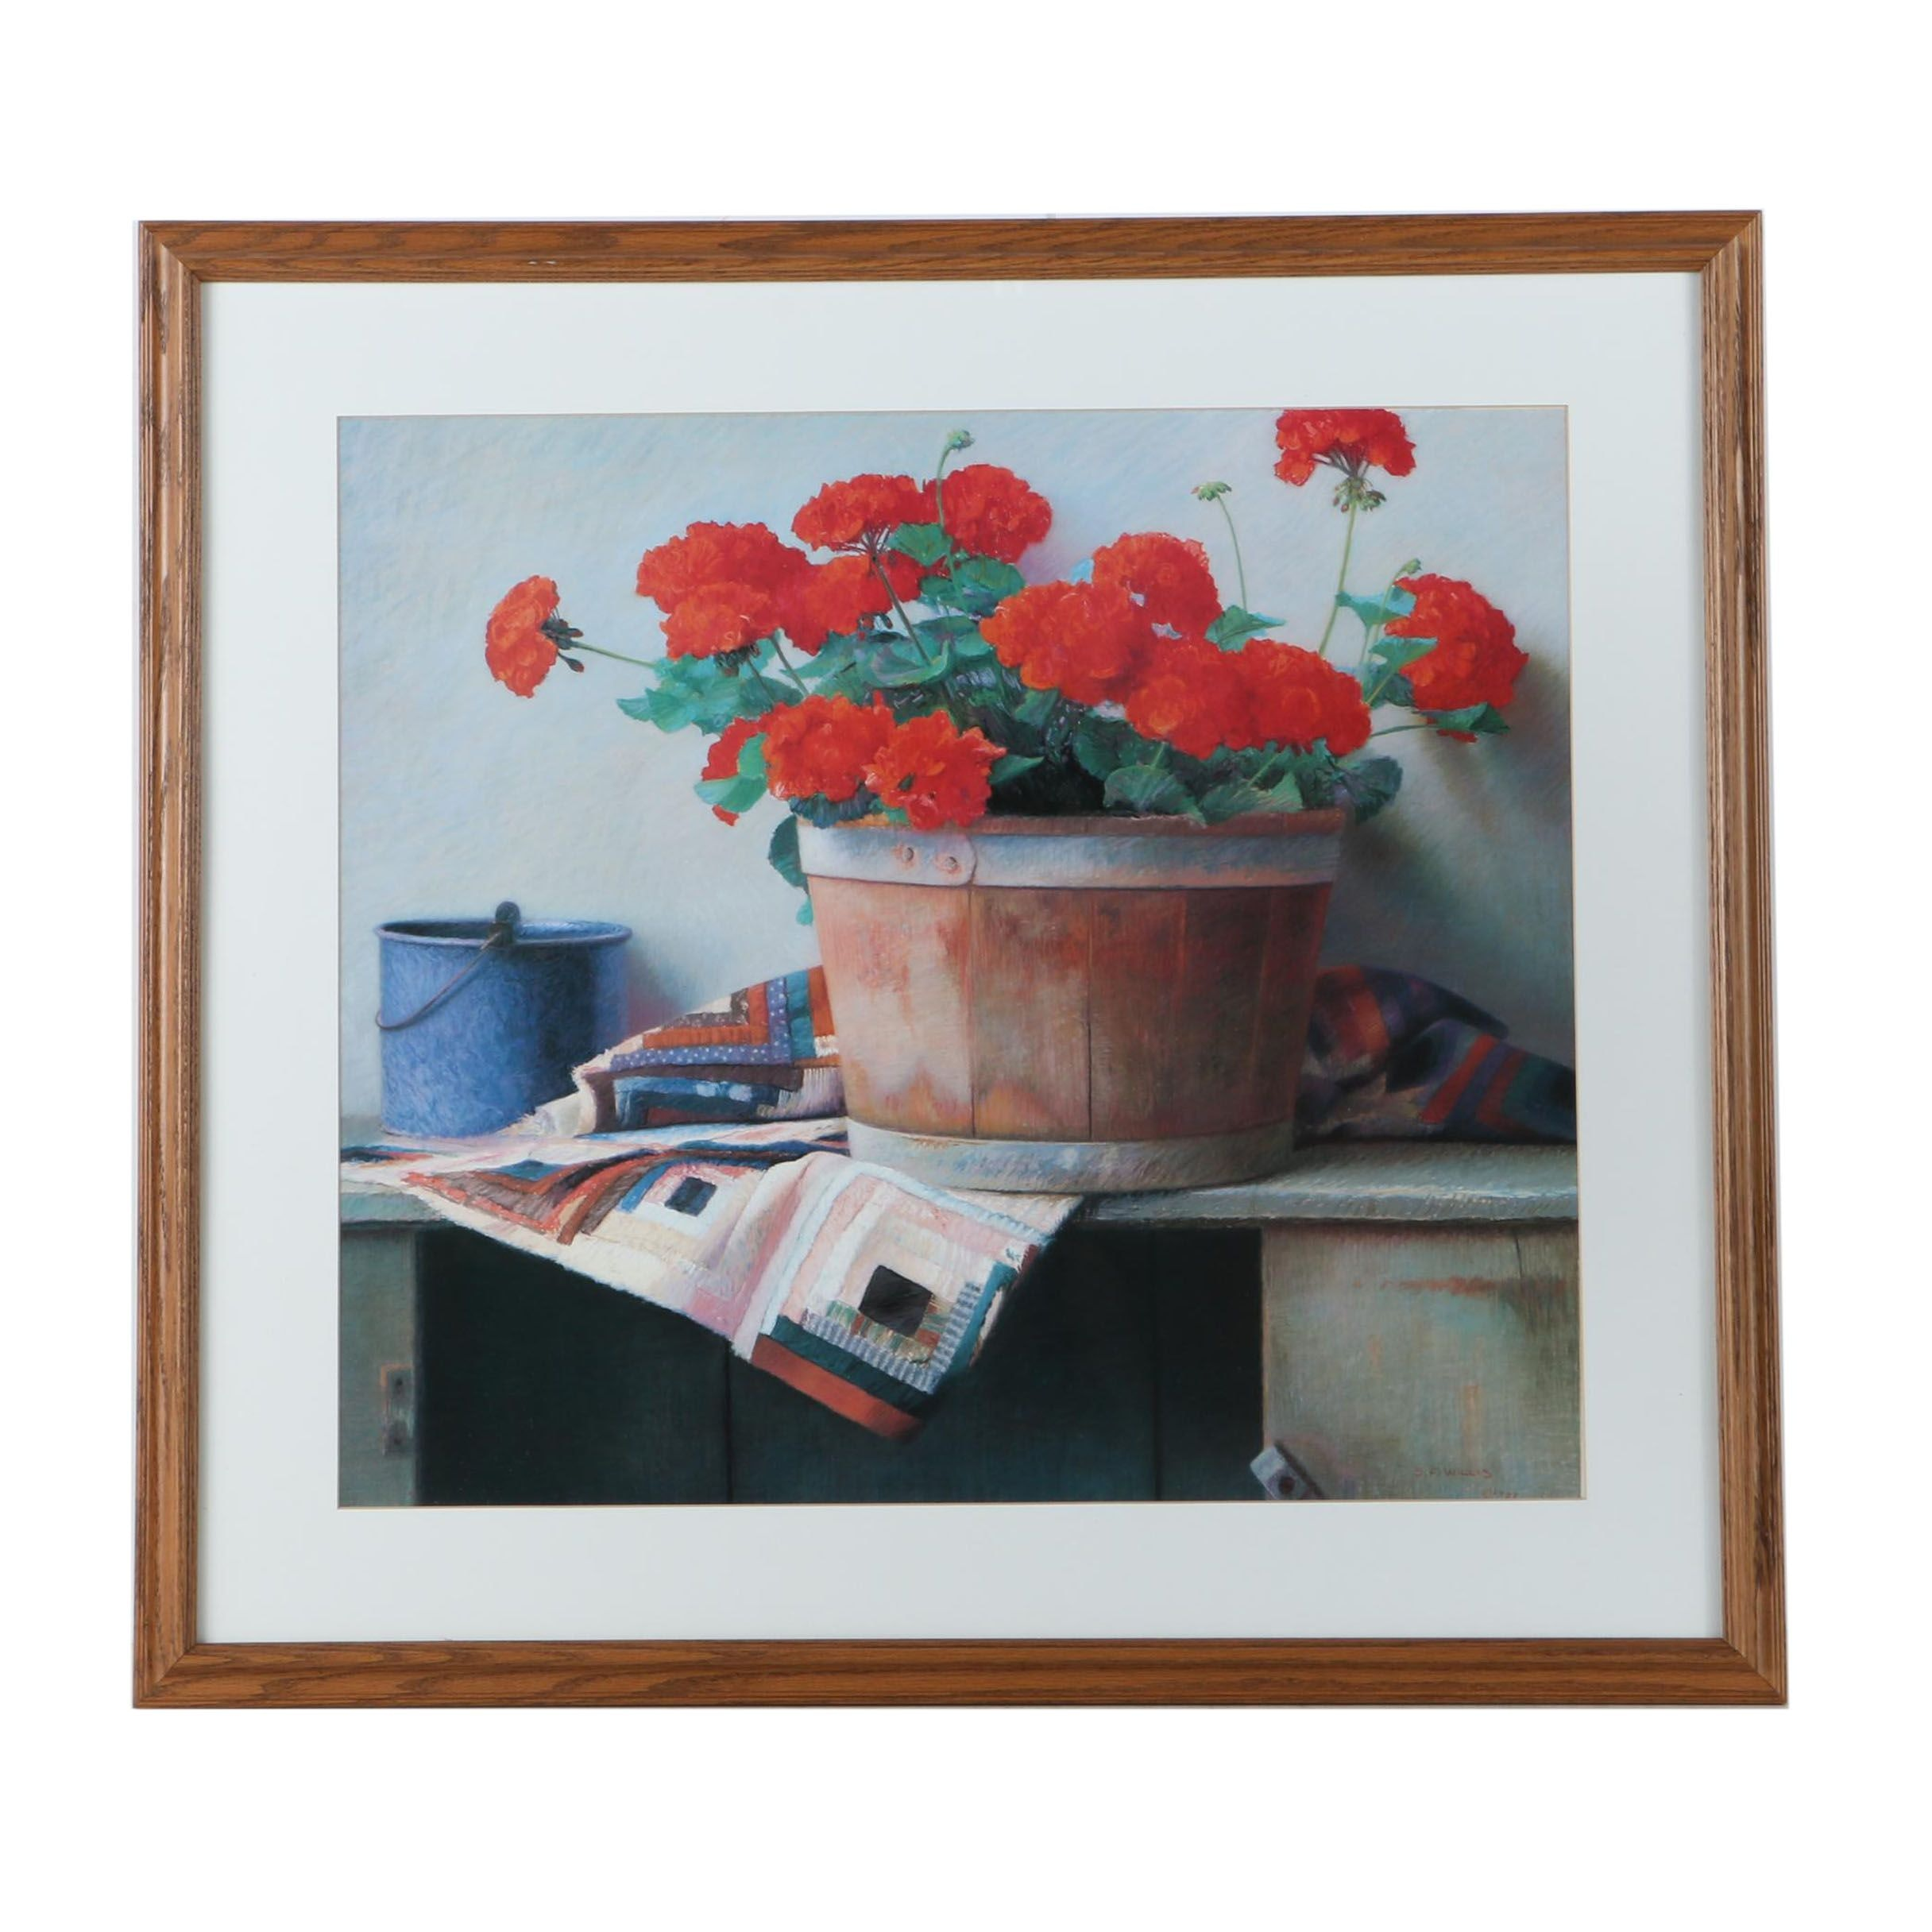 Offset Lithograph After S. F. Willis of Floral Still Life